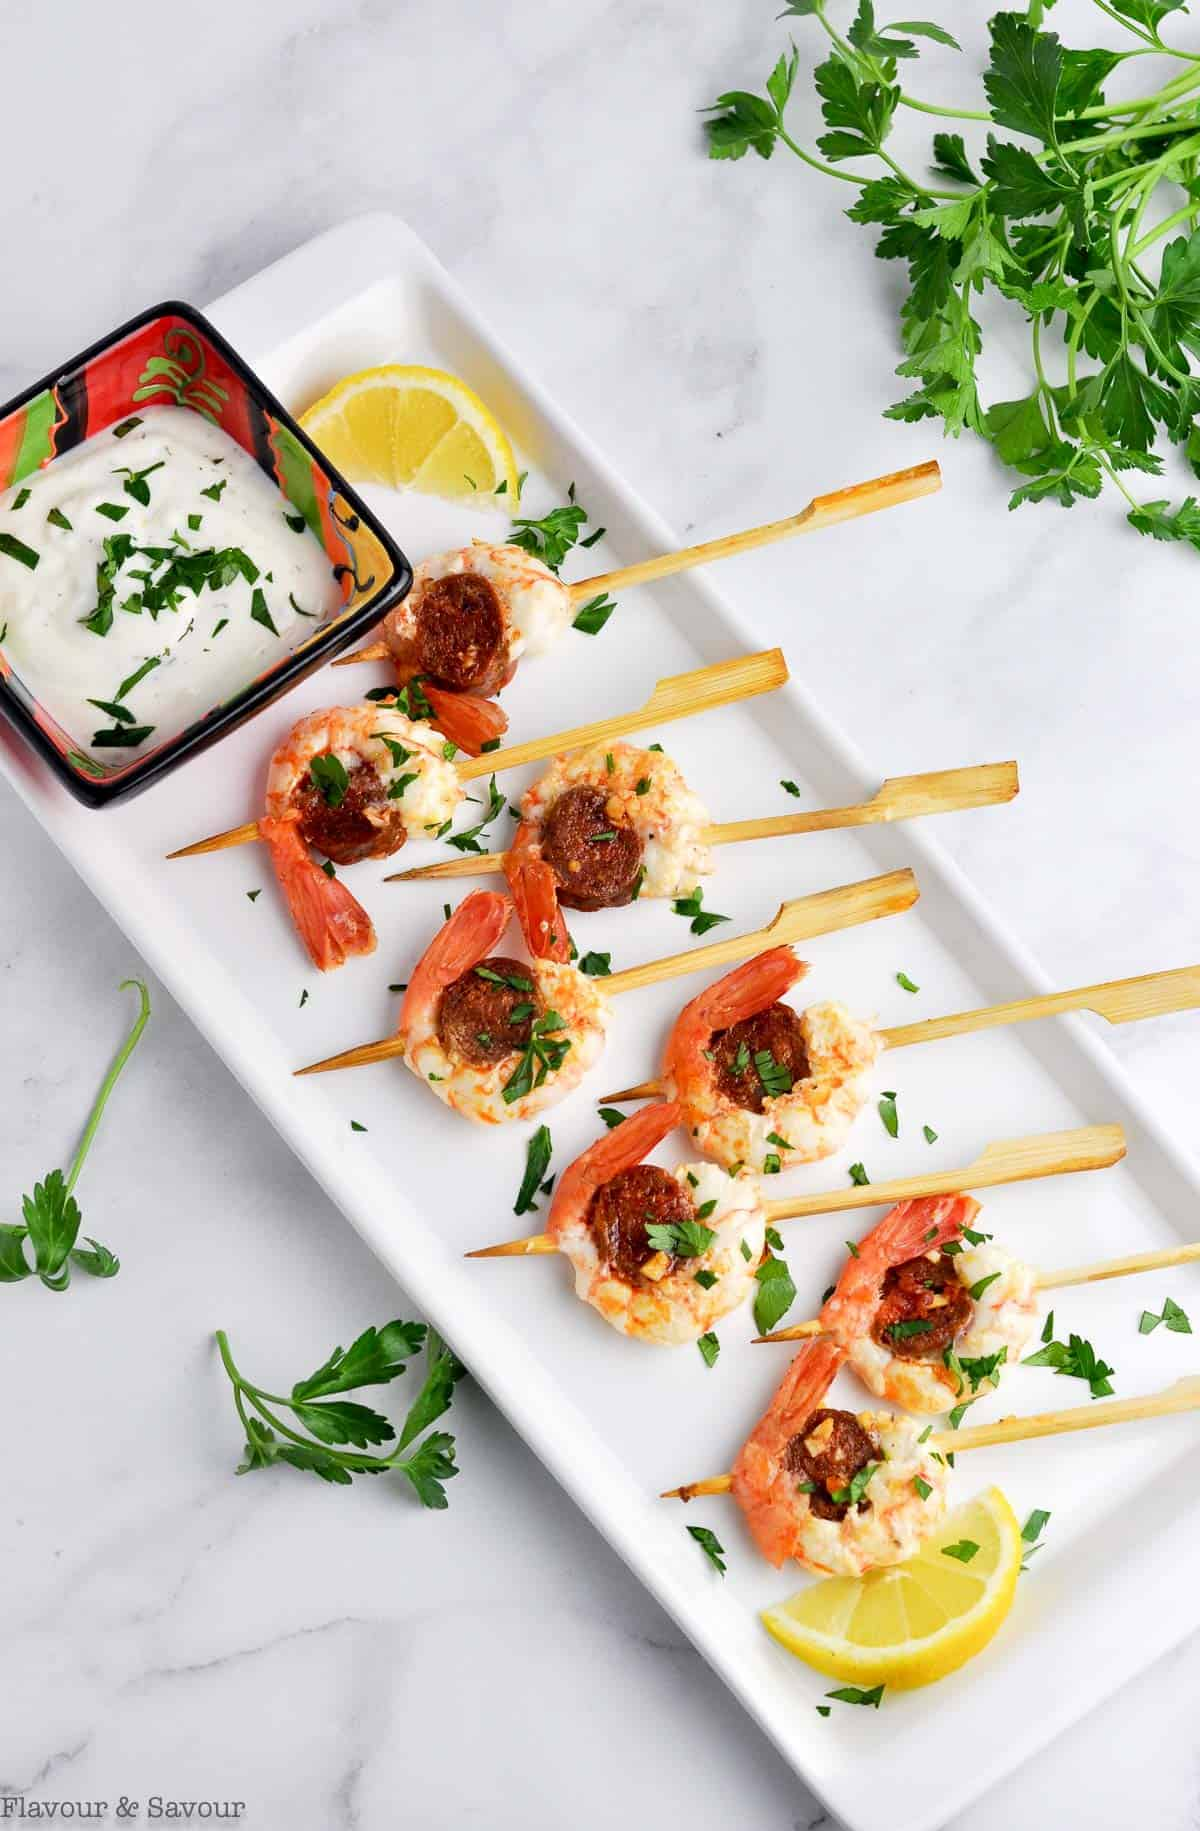 8 Prawn and Chorizo Skewer appetizers with a small dish of lemon dipping sauce